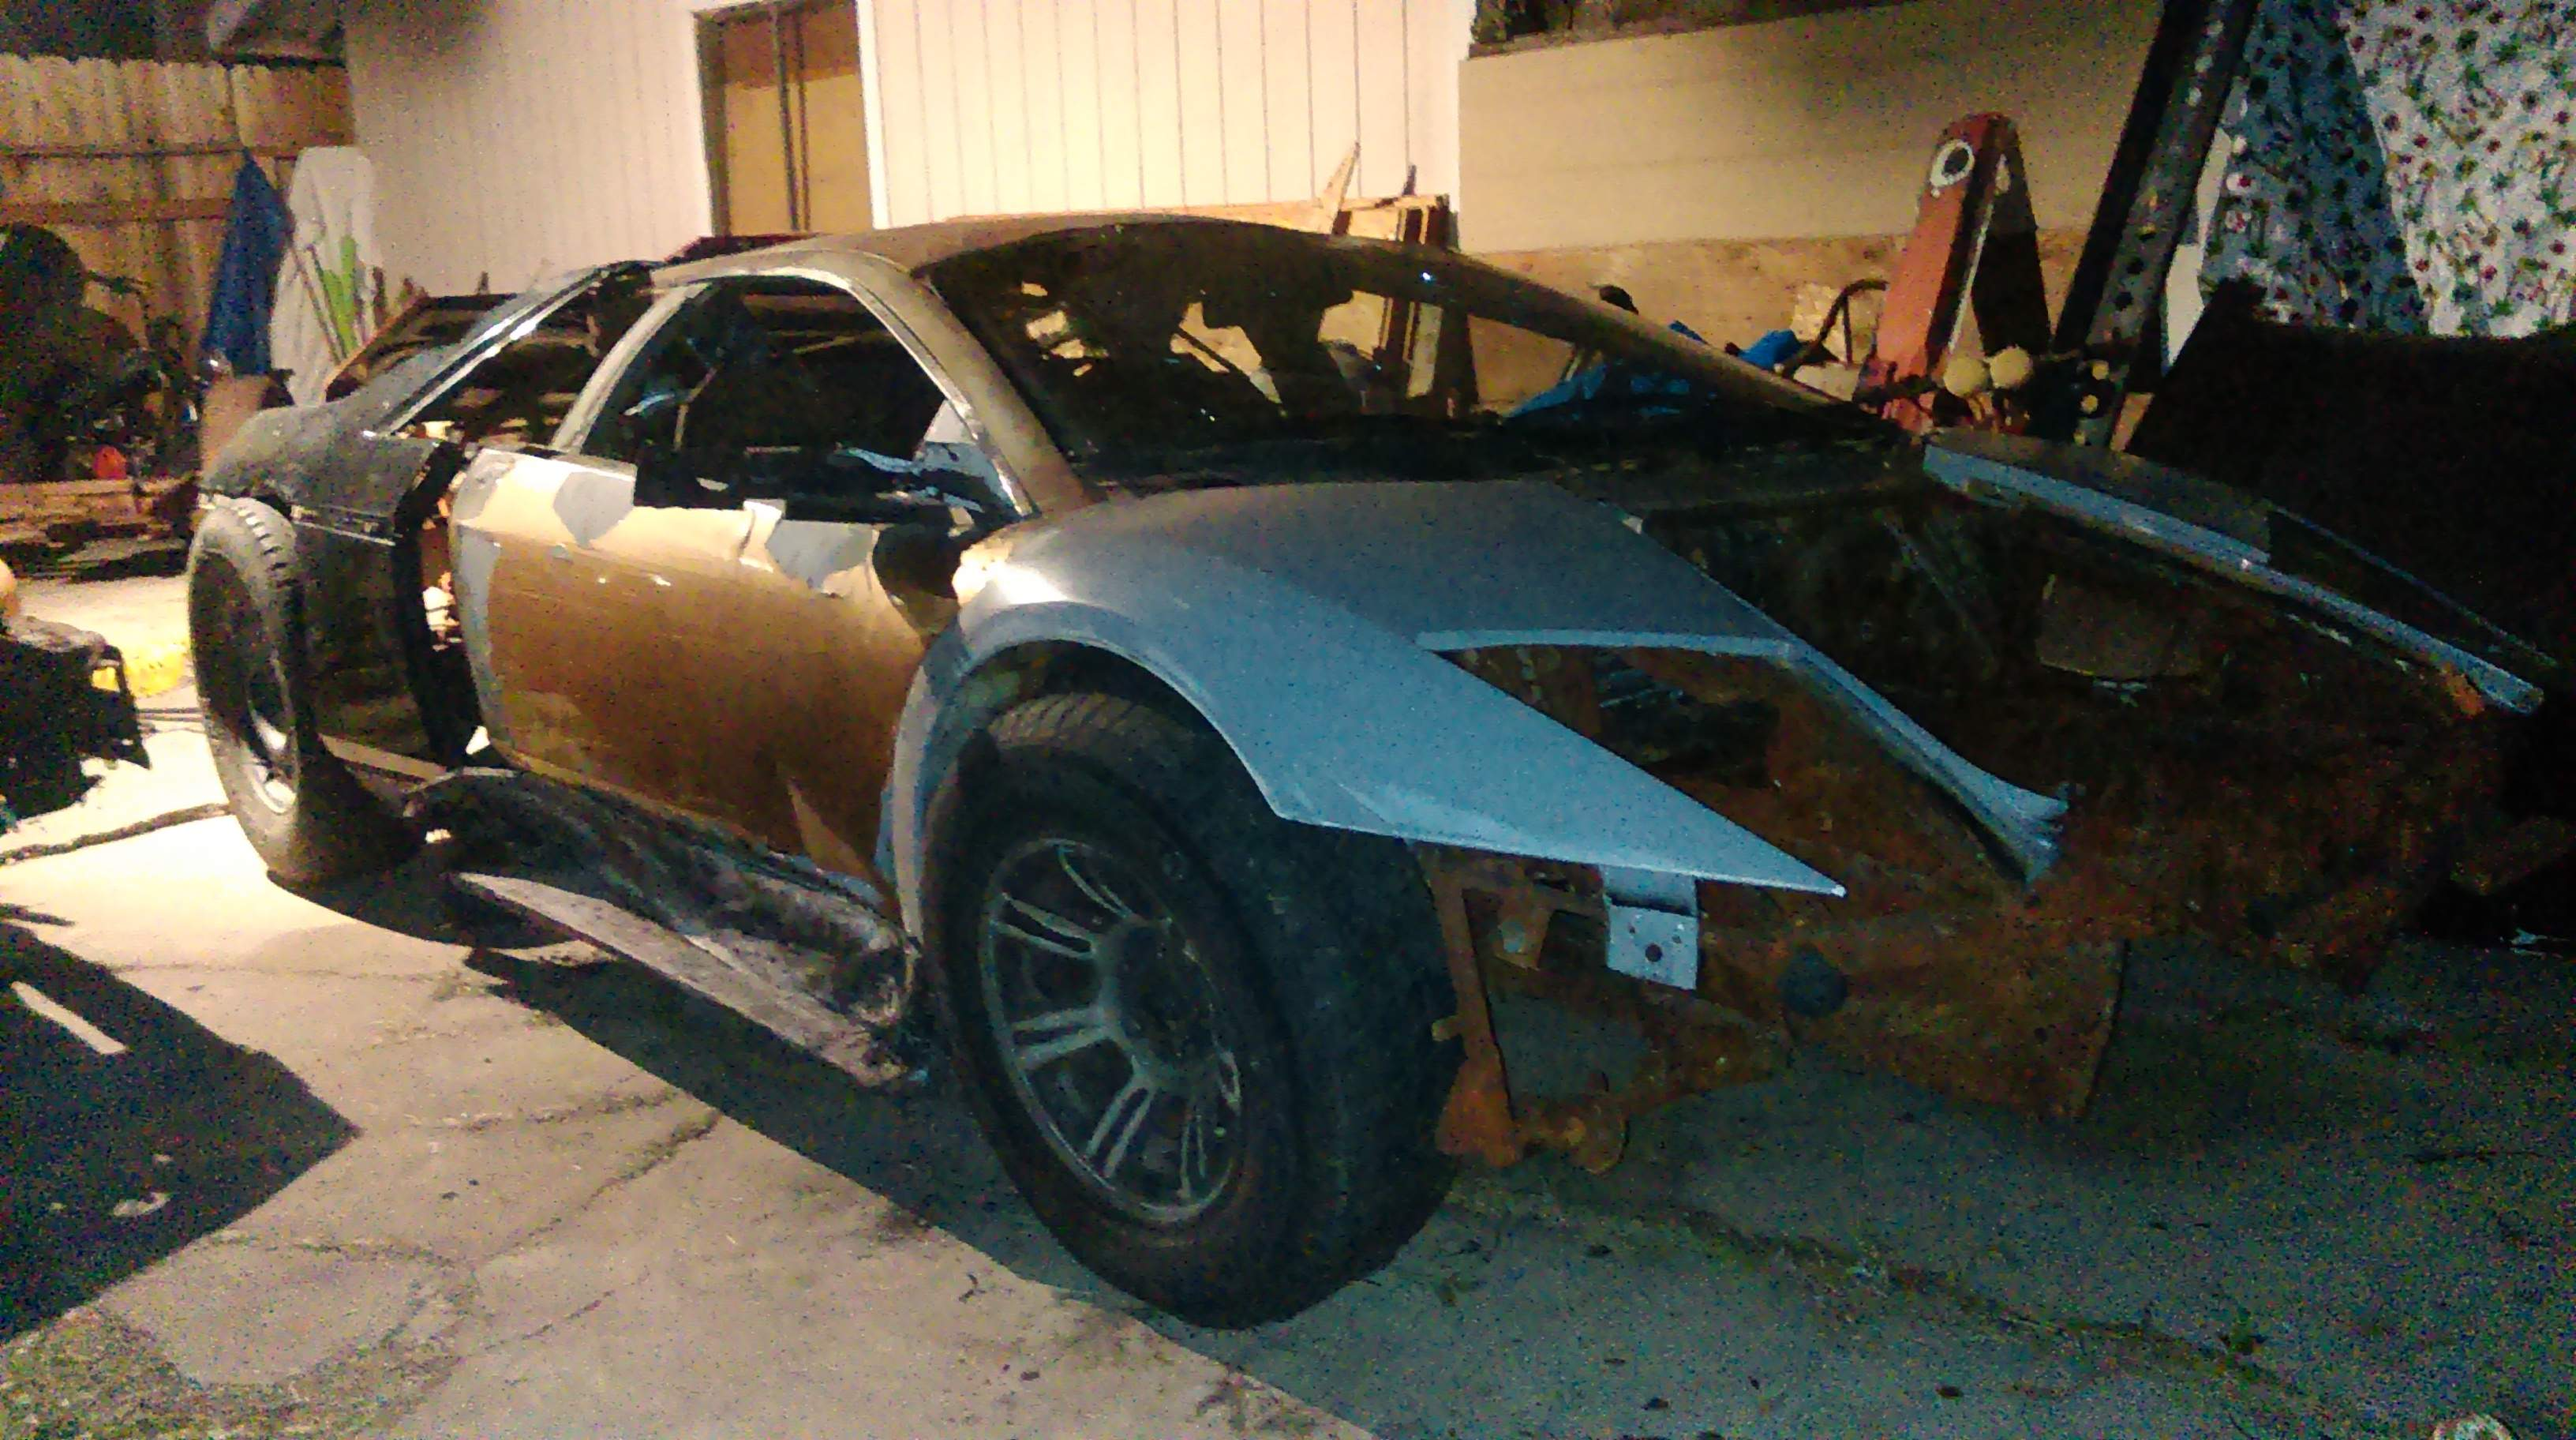 Diy do it yourself search i got myself a pretty crazy car project going on here a rekt lamborghini murcielagolong story check the o archives for cheap that im trying to solutioingenieria Gallery